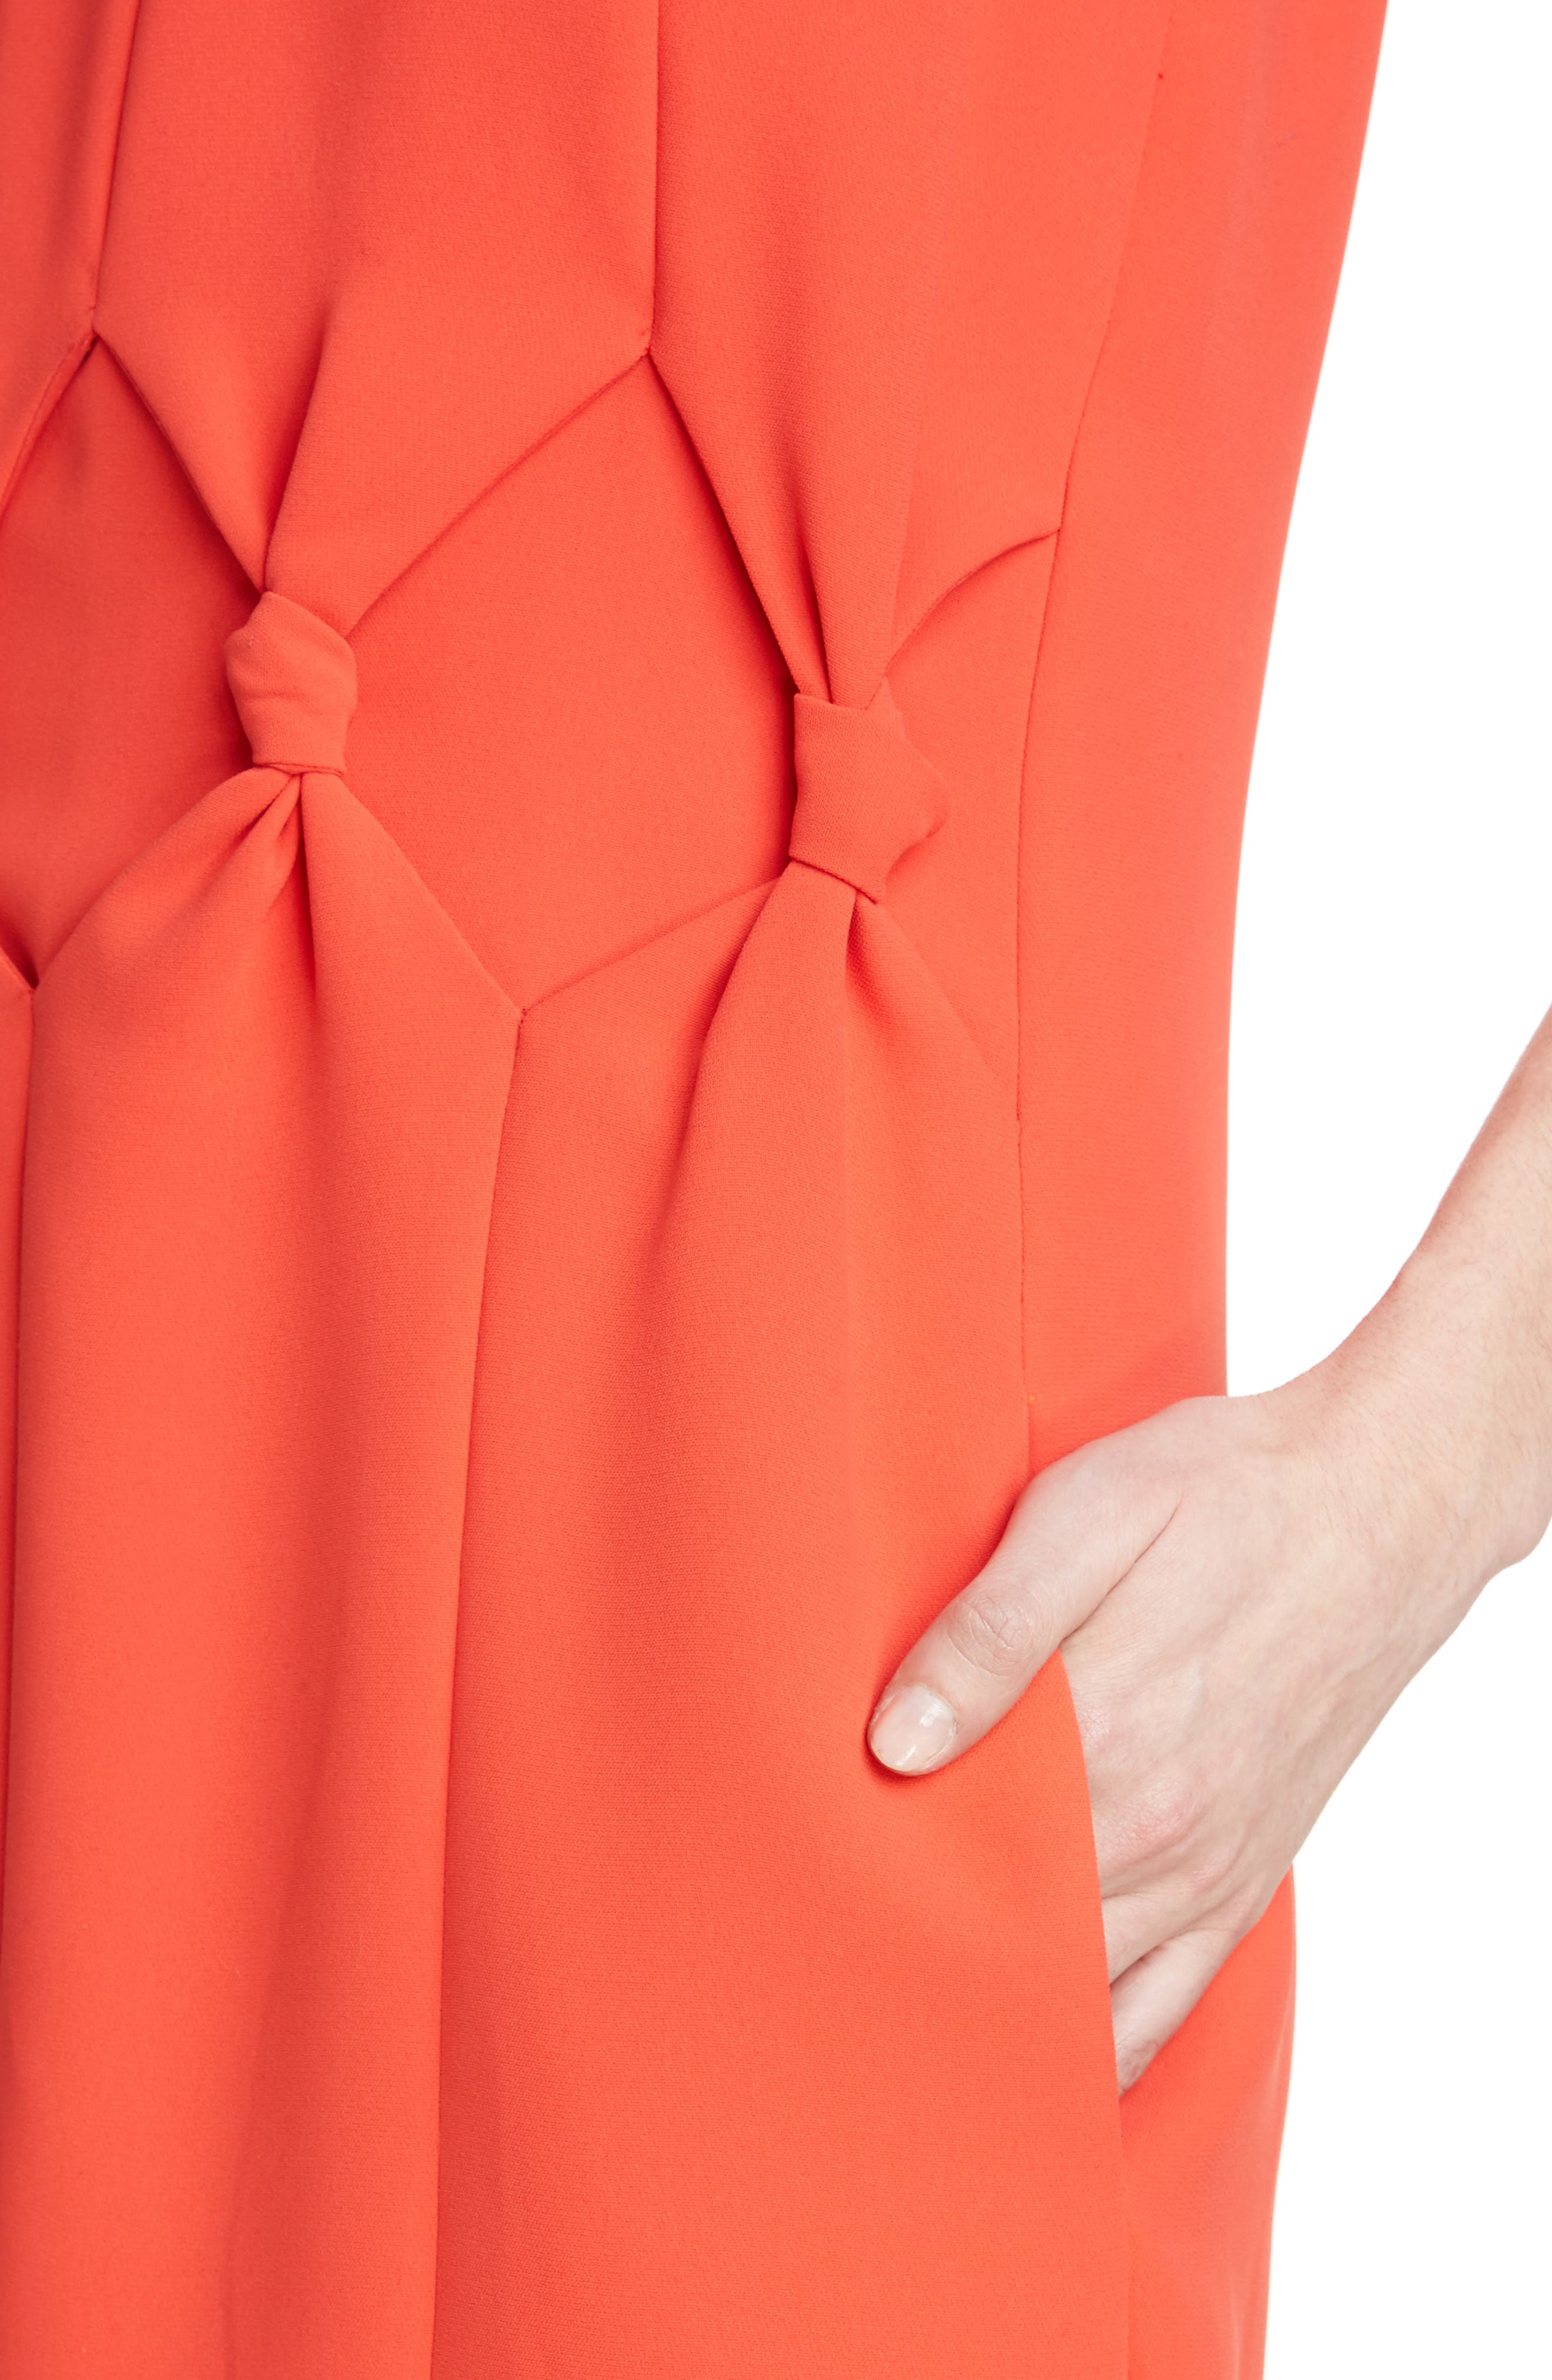 Knot Front Dress,                             Alternate thumbnail 4, color,                             Postbox Red